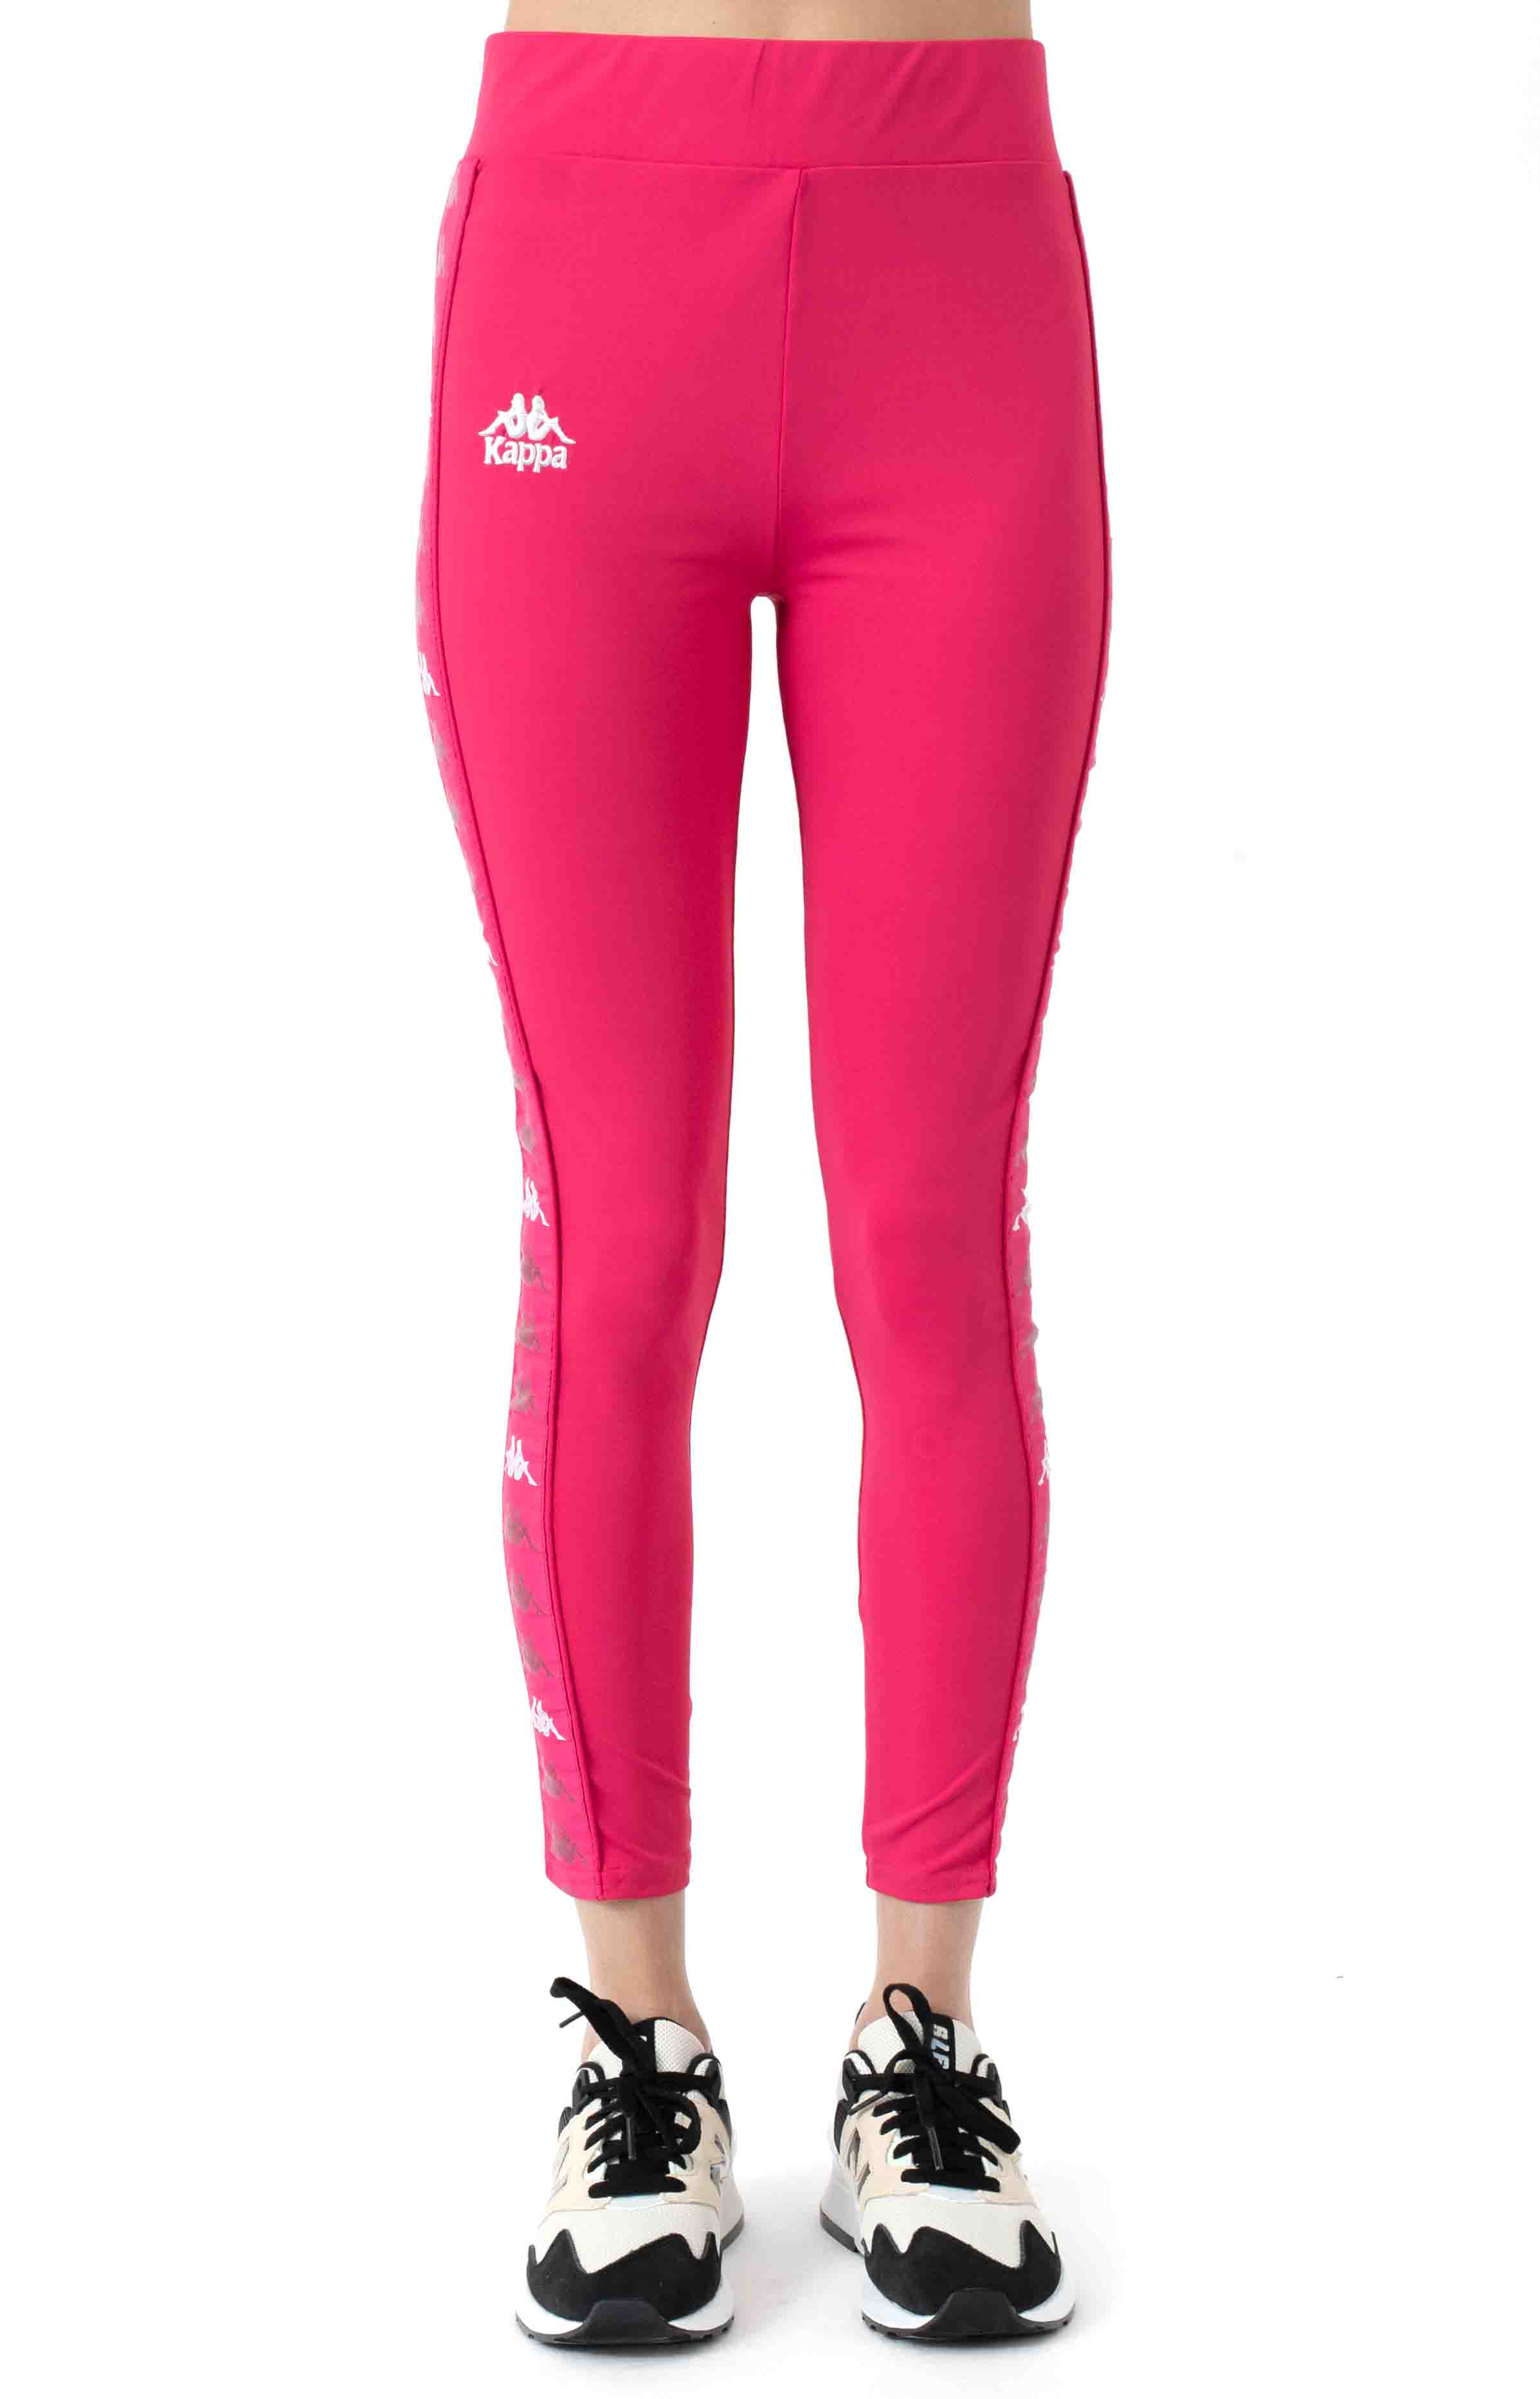 222 Banda Bartes Leggings - Pink/White